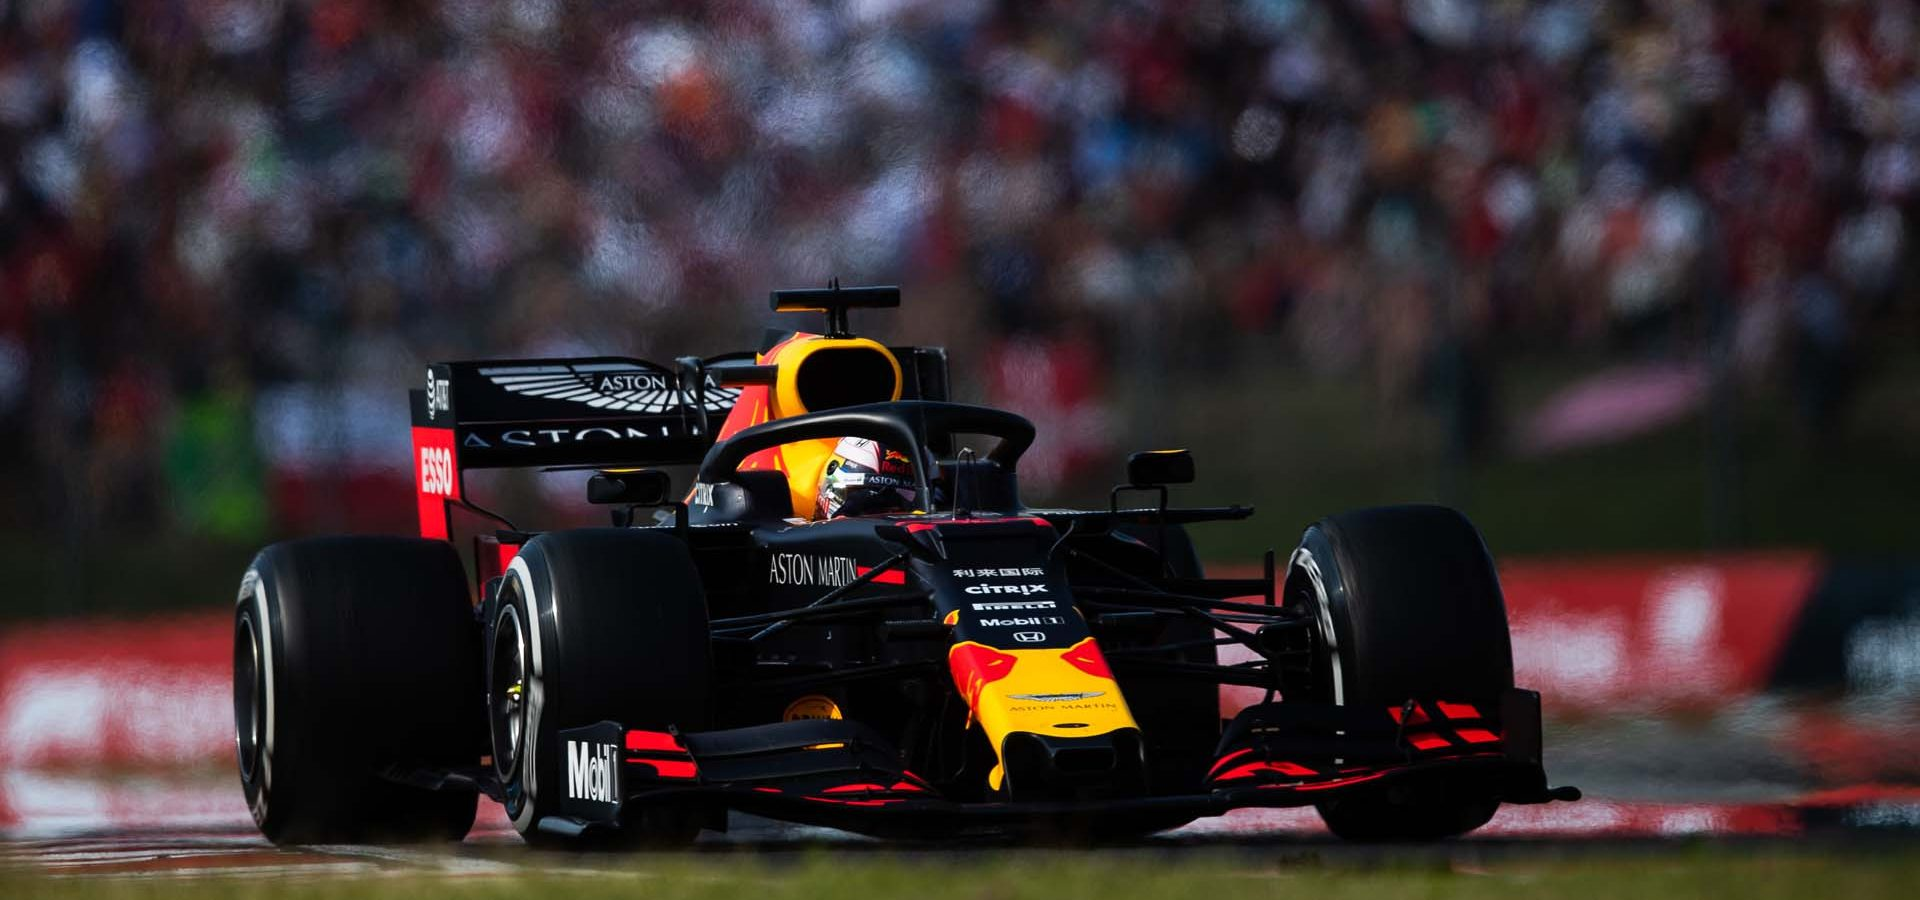 BUDAPEST, HUNGARY - AUGUST 04: Max Verstappen of the Netherlands driving the (33) Aston Martin Red Bull Racing RB15 on track during the F1 Grand Prix of Hungary at Hungaroring on August 04, 2019 in Budapest, Hungary. (Photo by Lars Baron/Getty Images) // Getty Images / Red Bull Content Pool  // AP-215JKV4991W11 // Usage for editorial use only // Please go to www.redbullcontentpool.com for further information. //